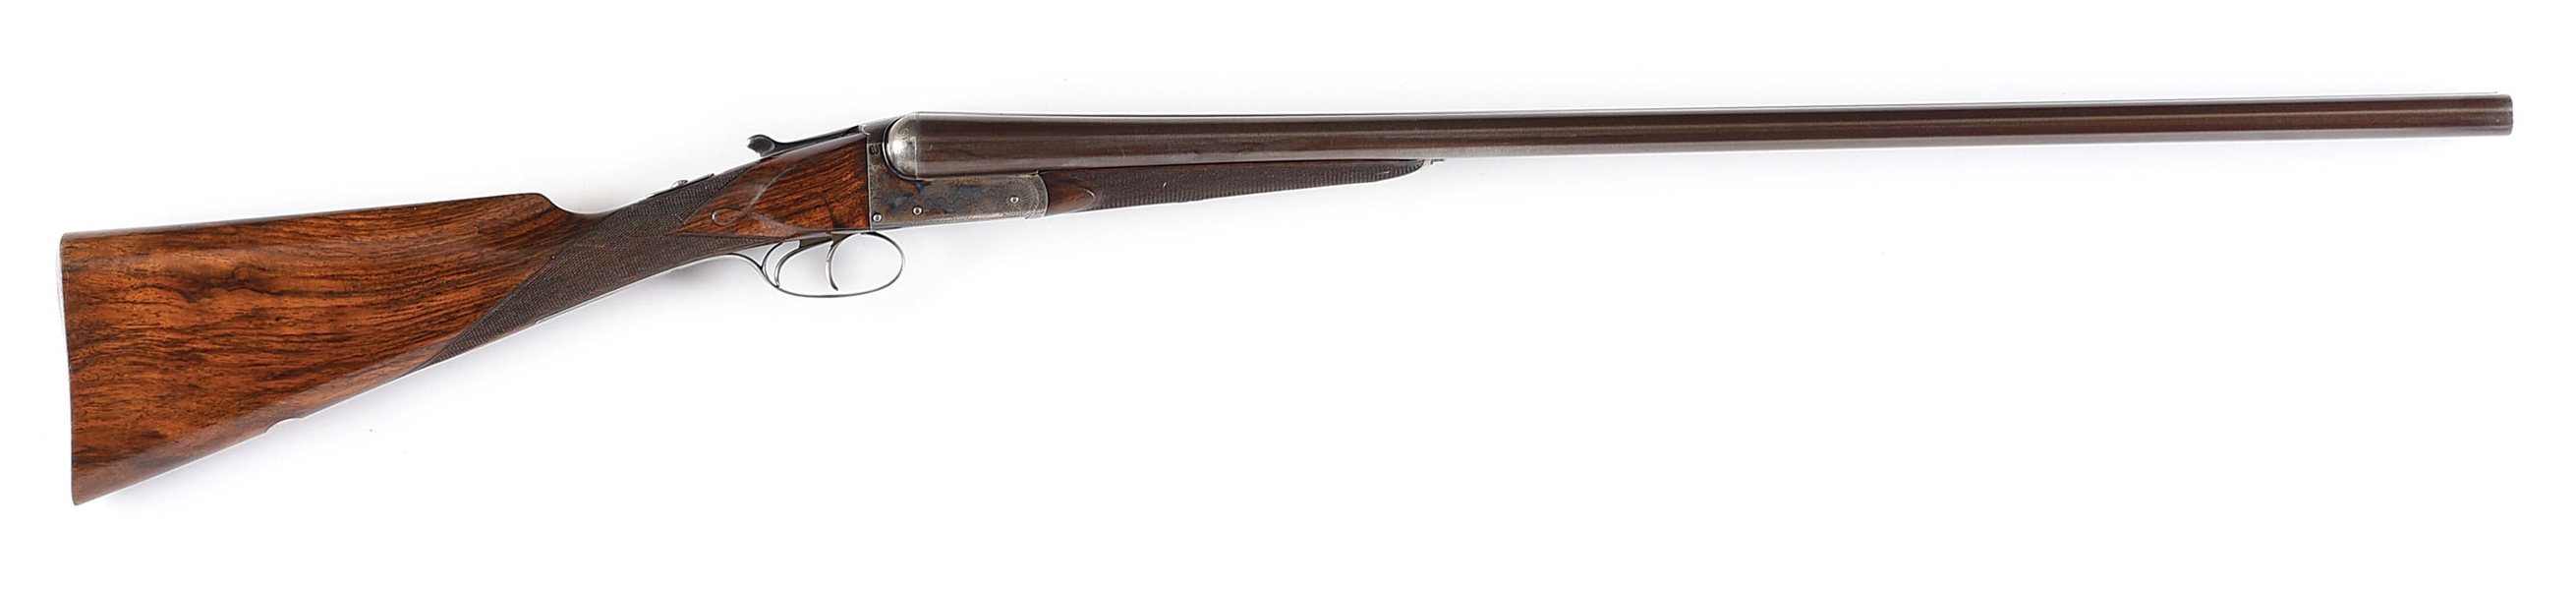 "(A) RARE JAMES PURDEY & SONS ""GRADE C"" BOXLOCK GAME SHOTGUN INCORPORATING W. ANSON PATENT EJECTOR OF 1884/6 IN  CASE."